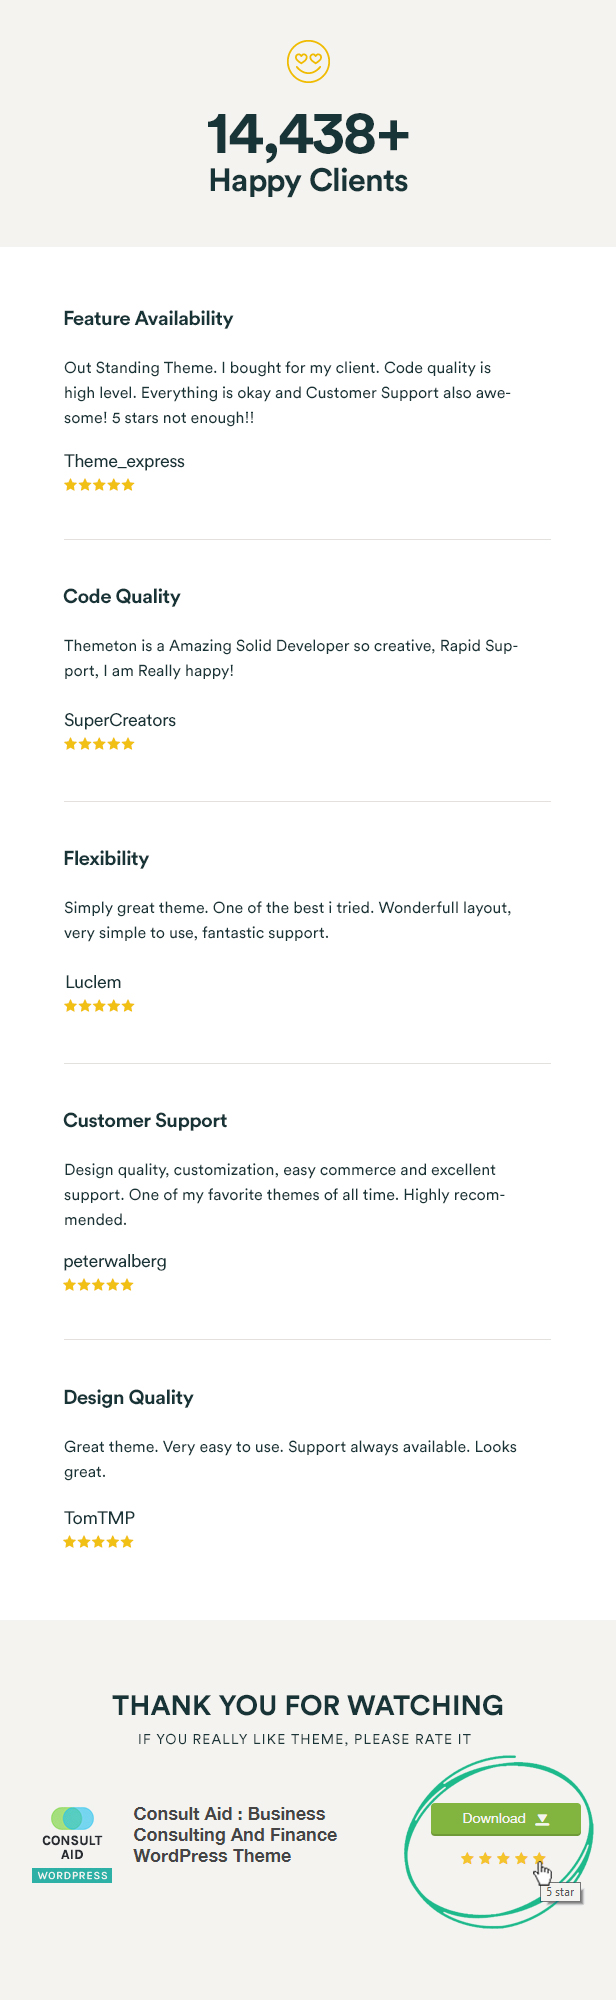 Consult Aid  - Business Consulting And Finance WordPress Theme